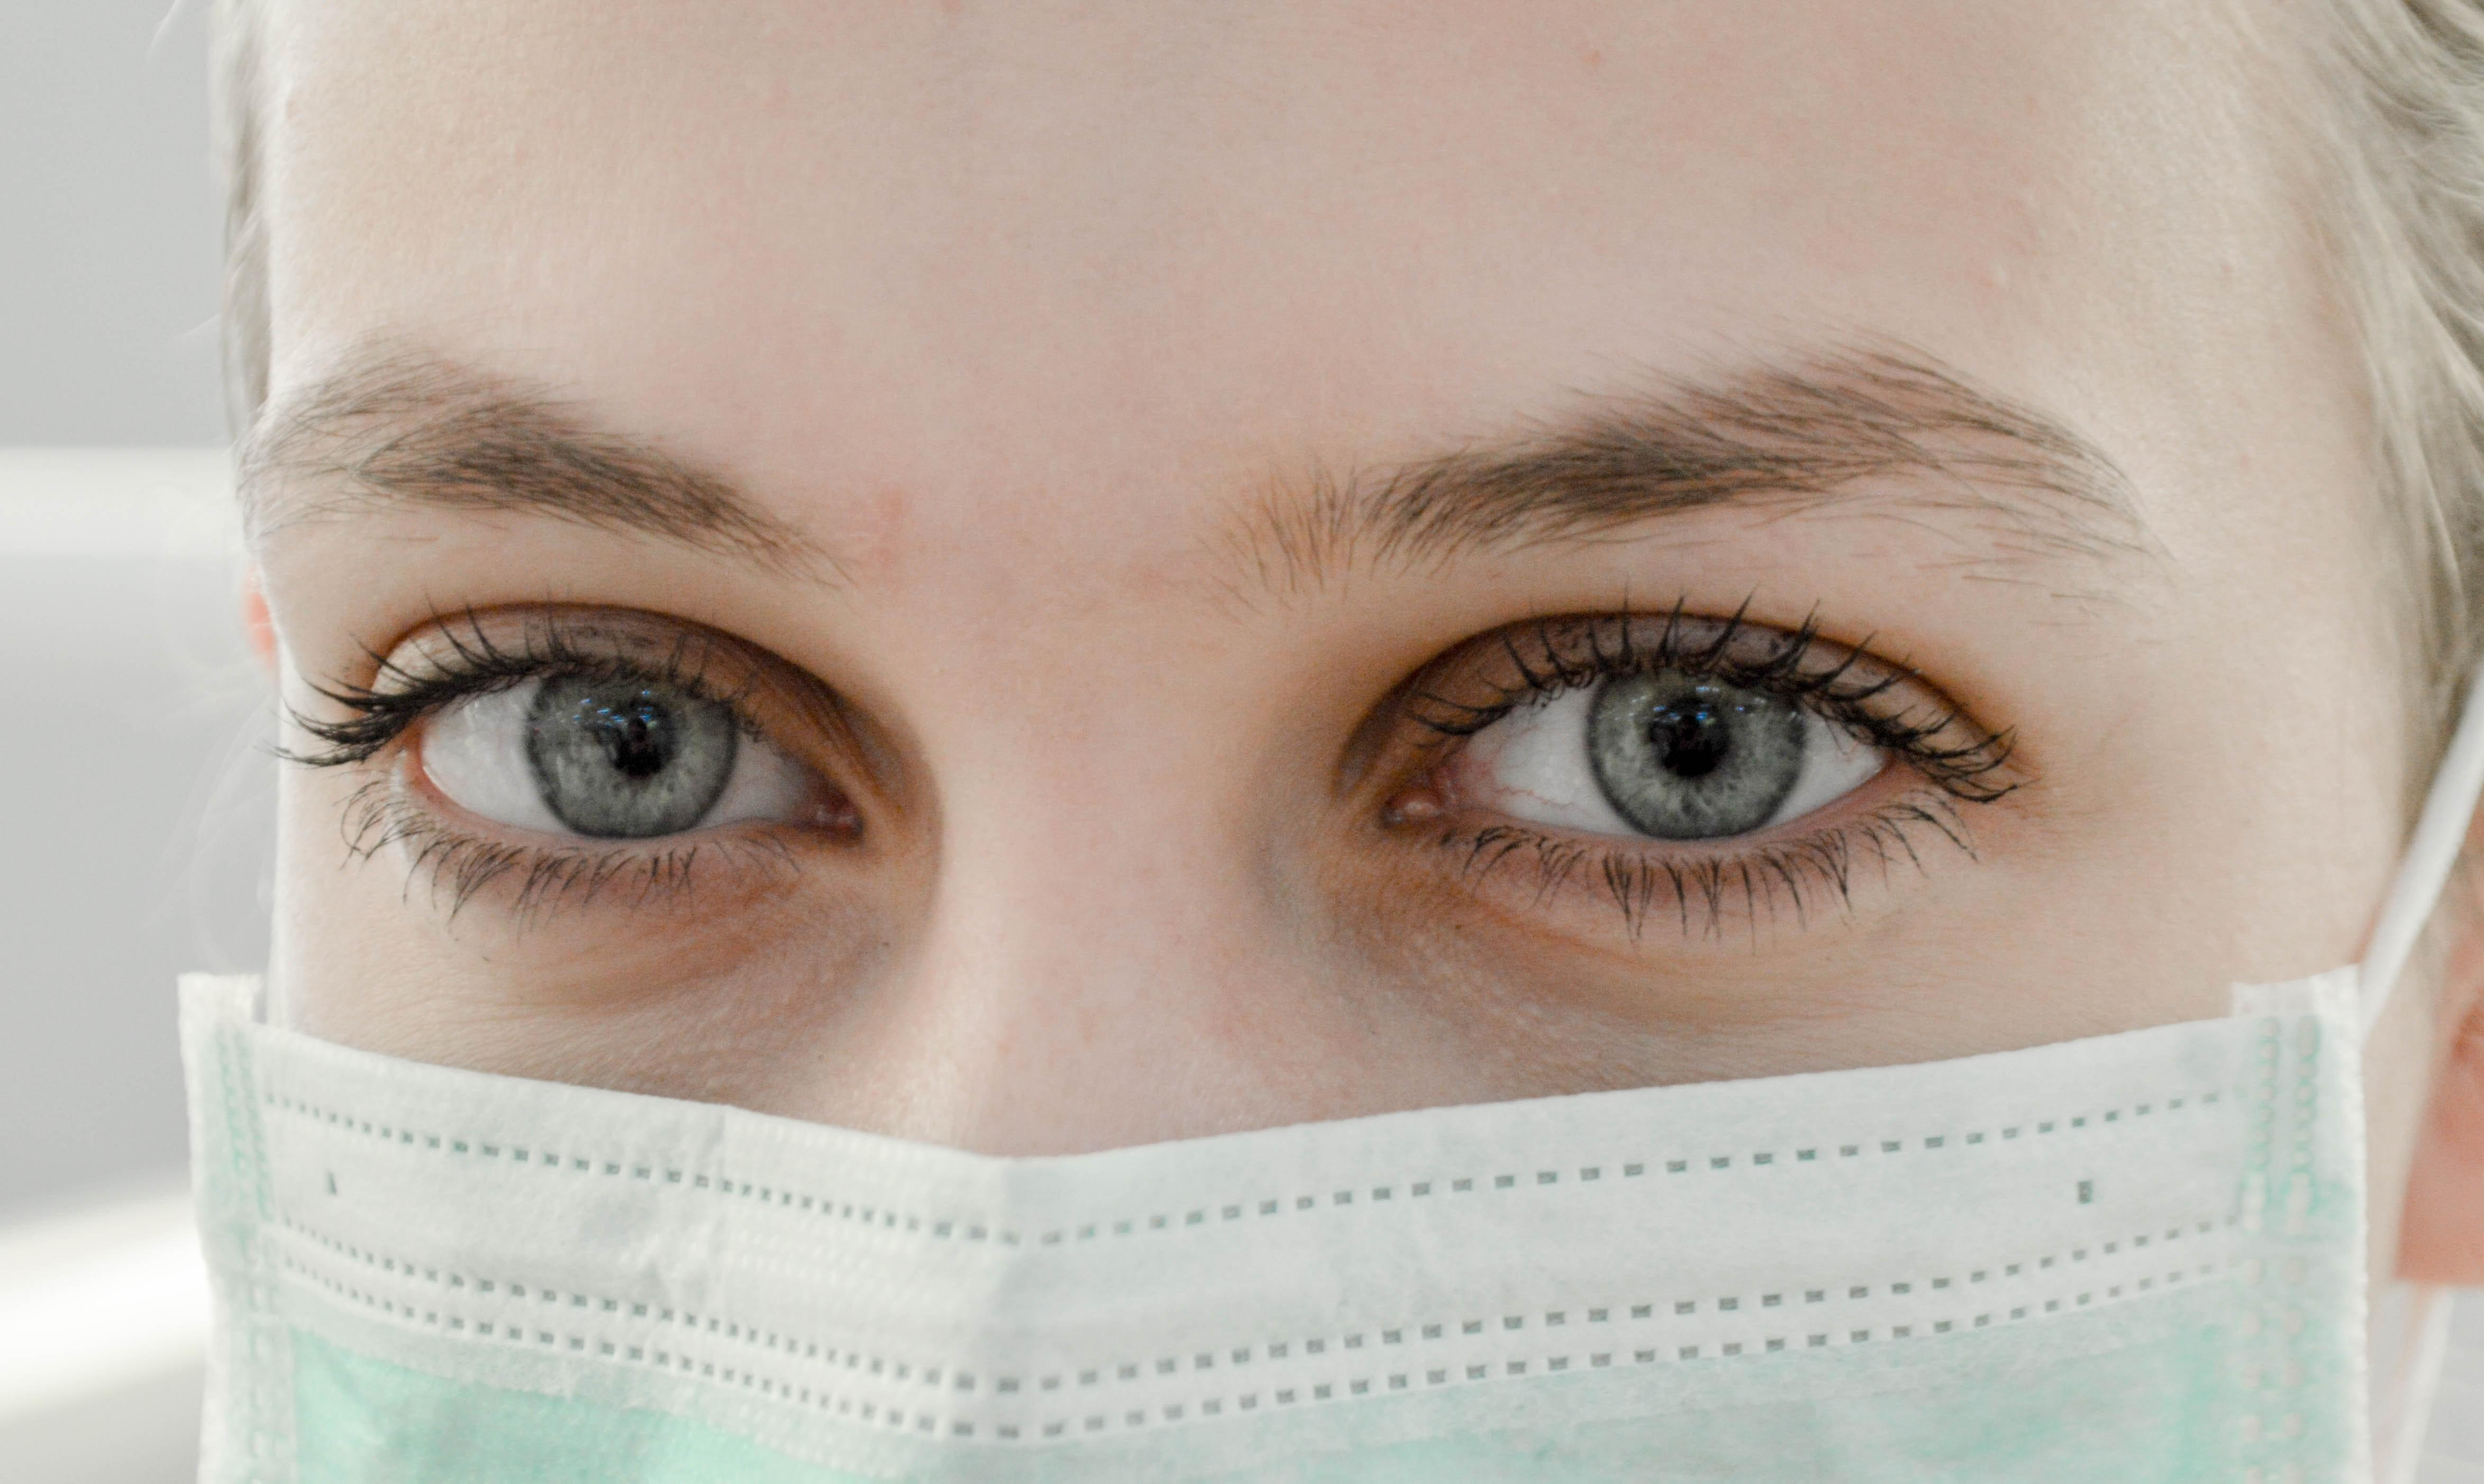 Local Healthcare Organizations Remind Visitors that Masks are Required at Hospitals, Clinics